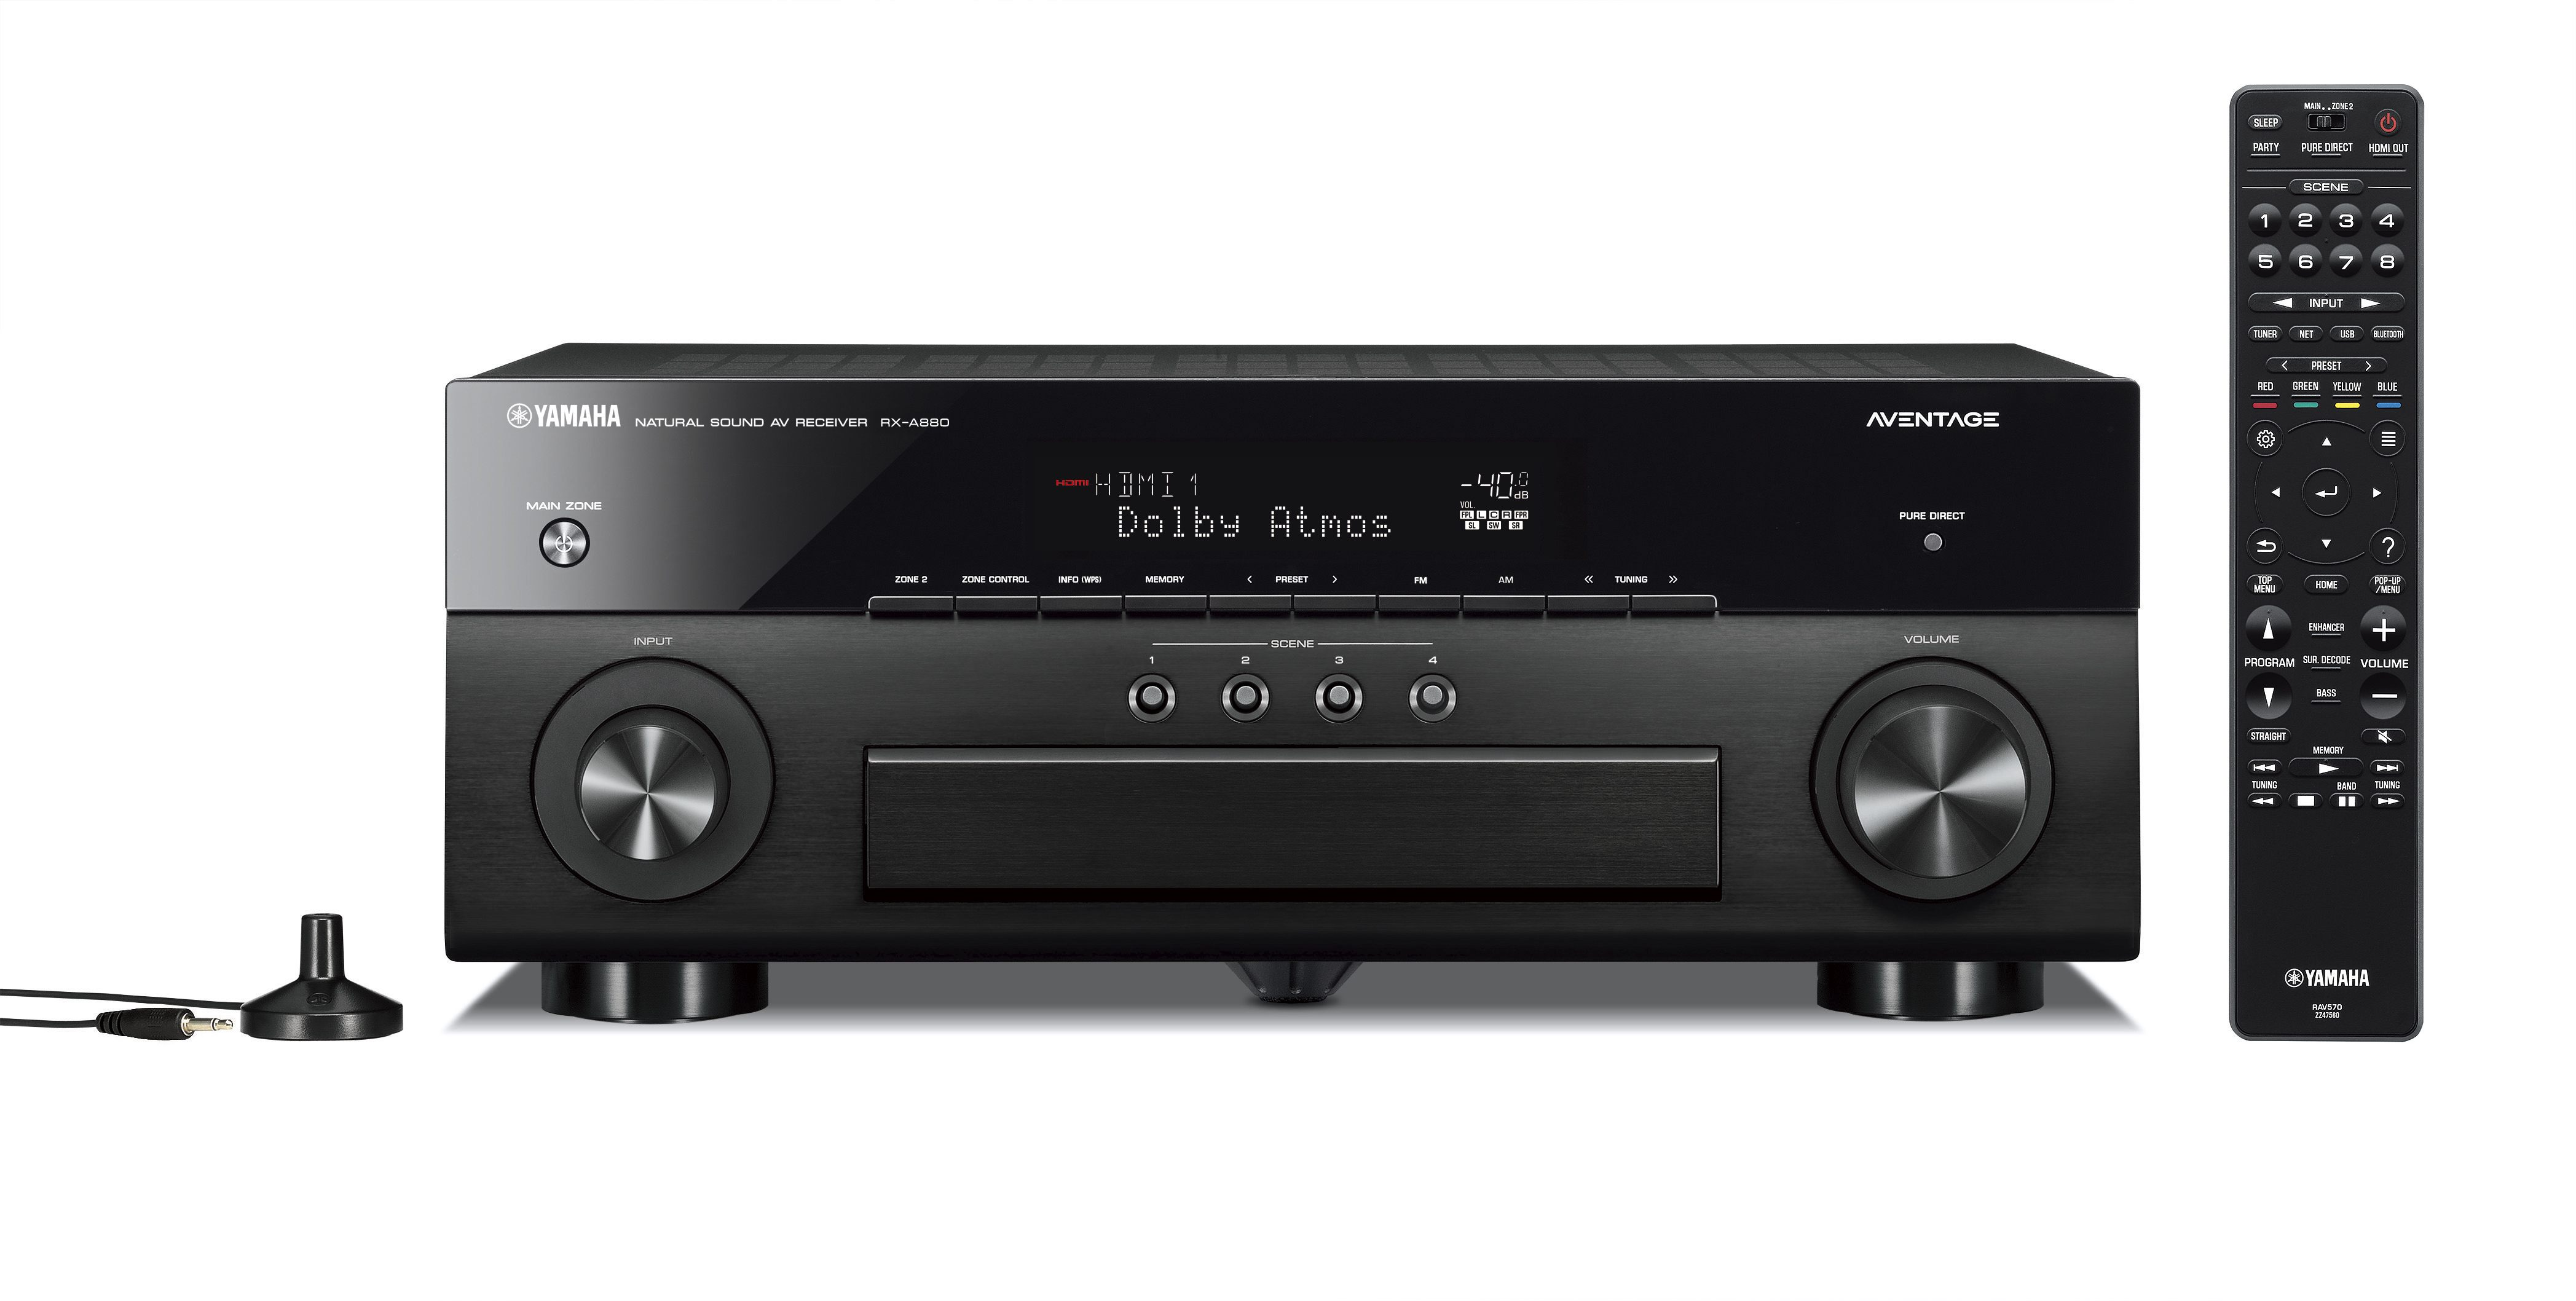 RX-A880 - Overview - AV Receivers - Audio & Visual